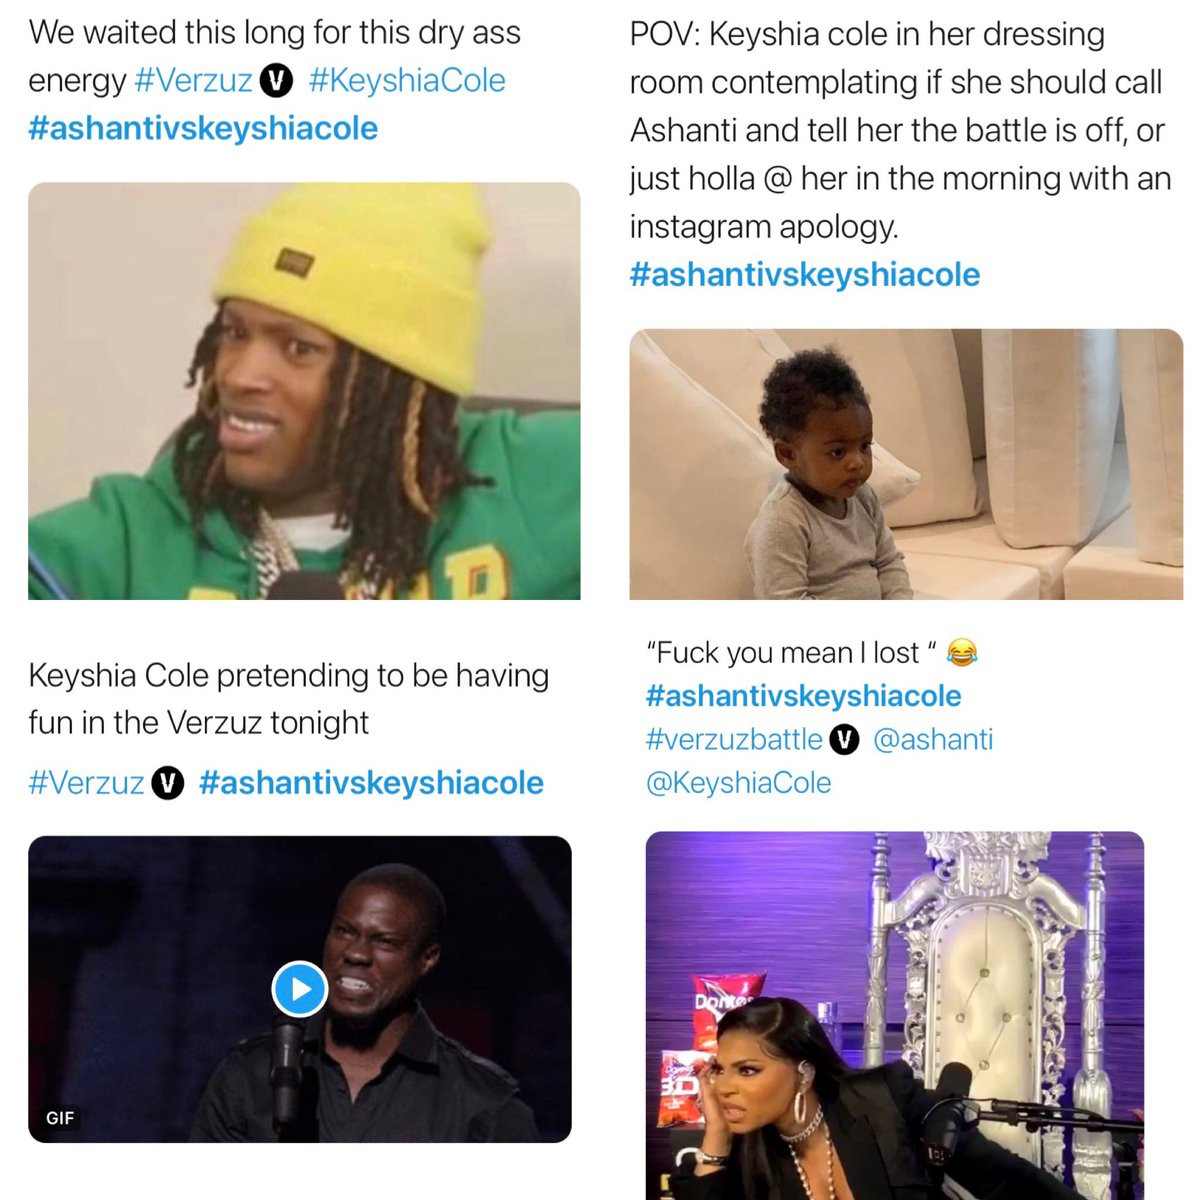 Some of Twitter's hilarious reactions to the Ashanti and Keyshia's verzuz from last night. The two artists showed up later than expected and that angered some fans. #Ashanti #KeyshiaCole #Verzuz #AshantiVsKeyshiaCole #KeyshiaColeVsAshanti